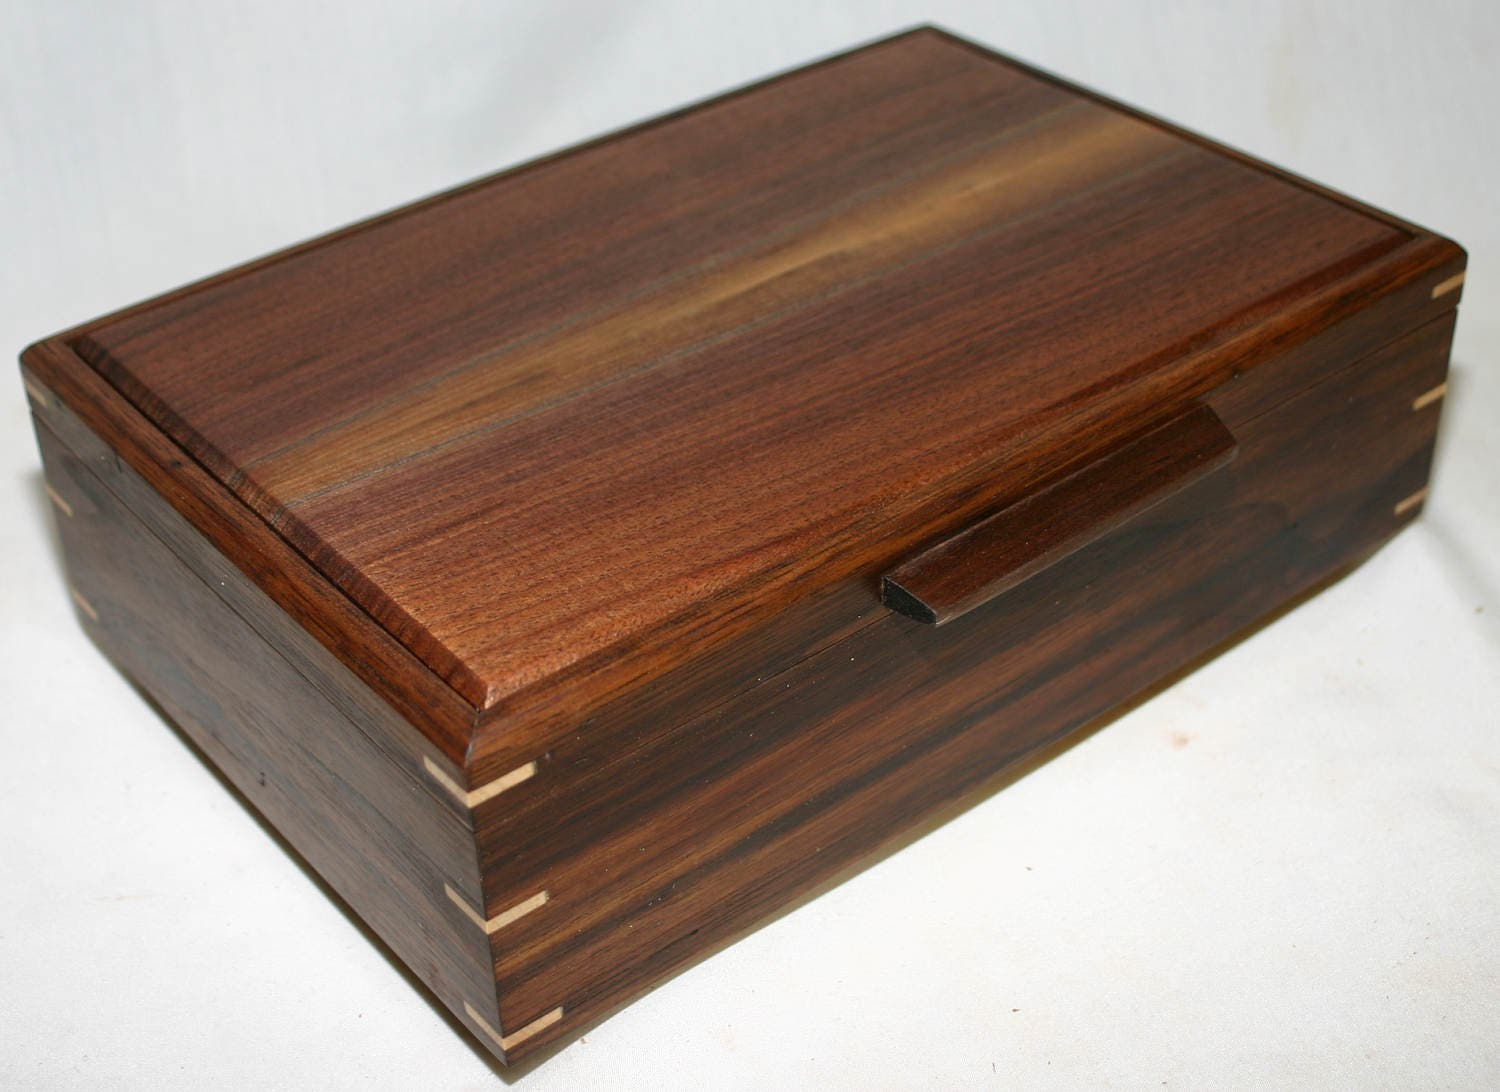 Wooden Decorative Trays New Carolinawoodshop  Men's Valet Box With Phone Charging Port And Design Ideas